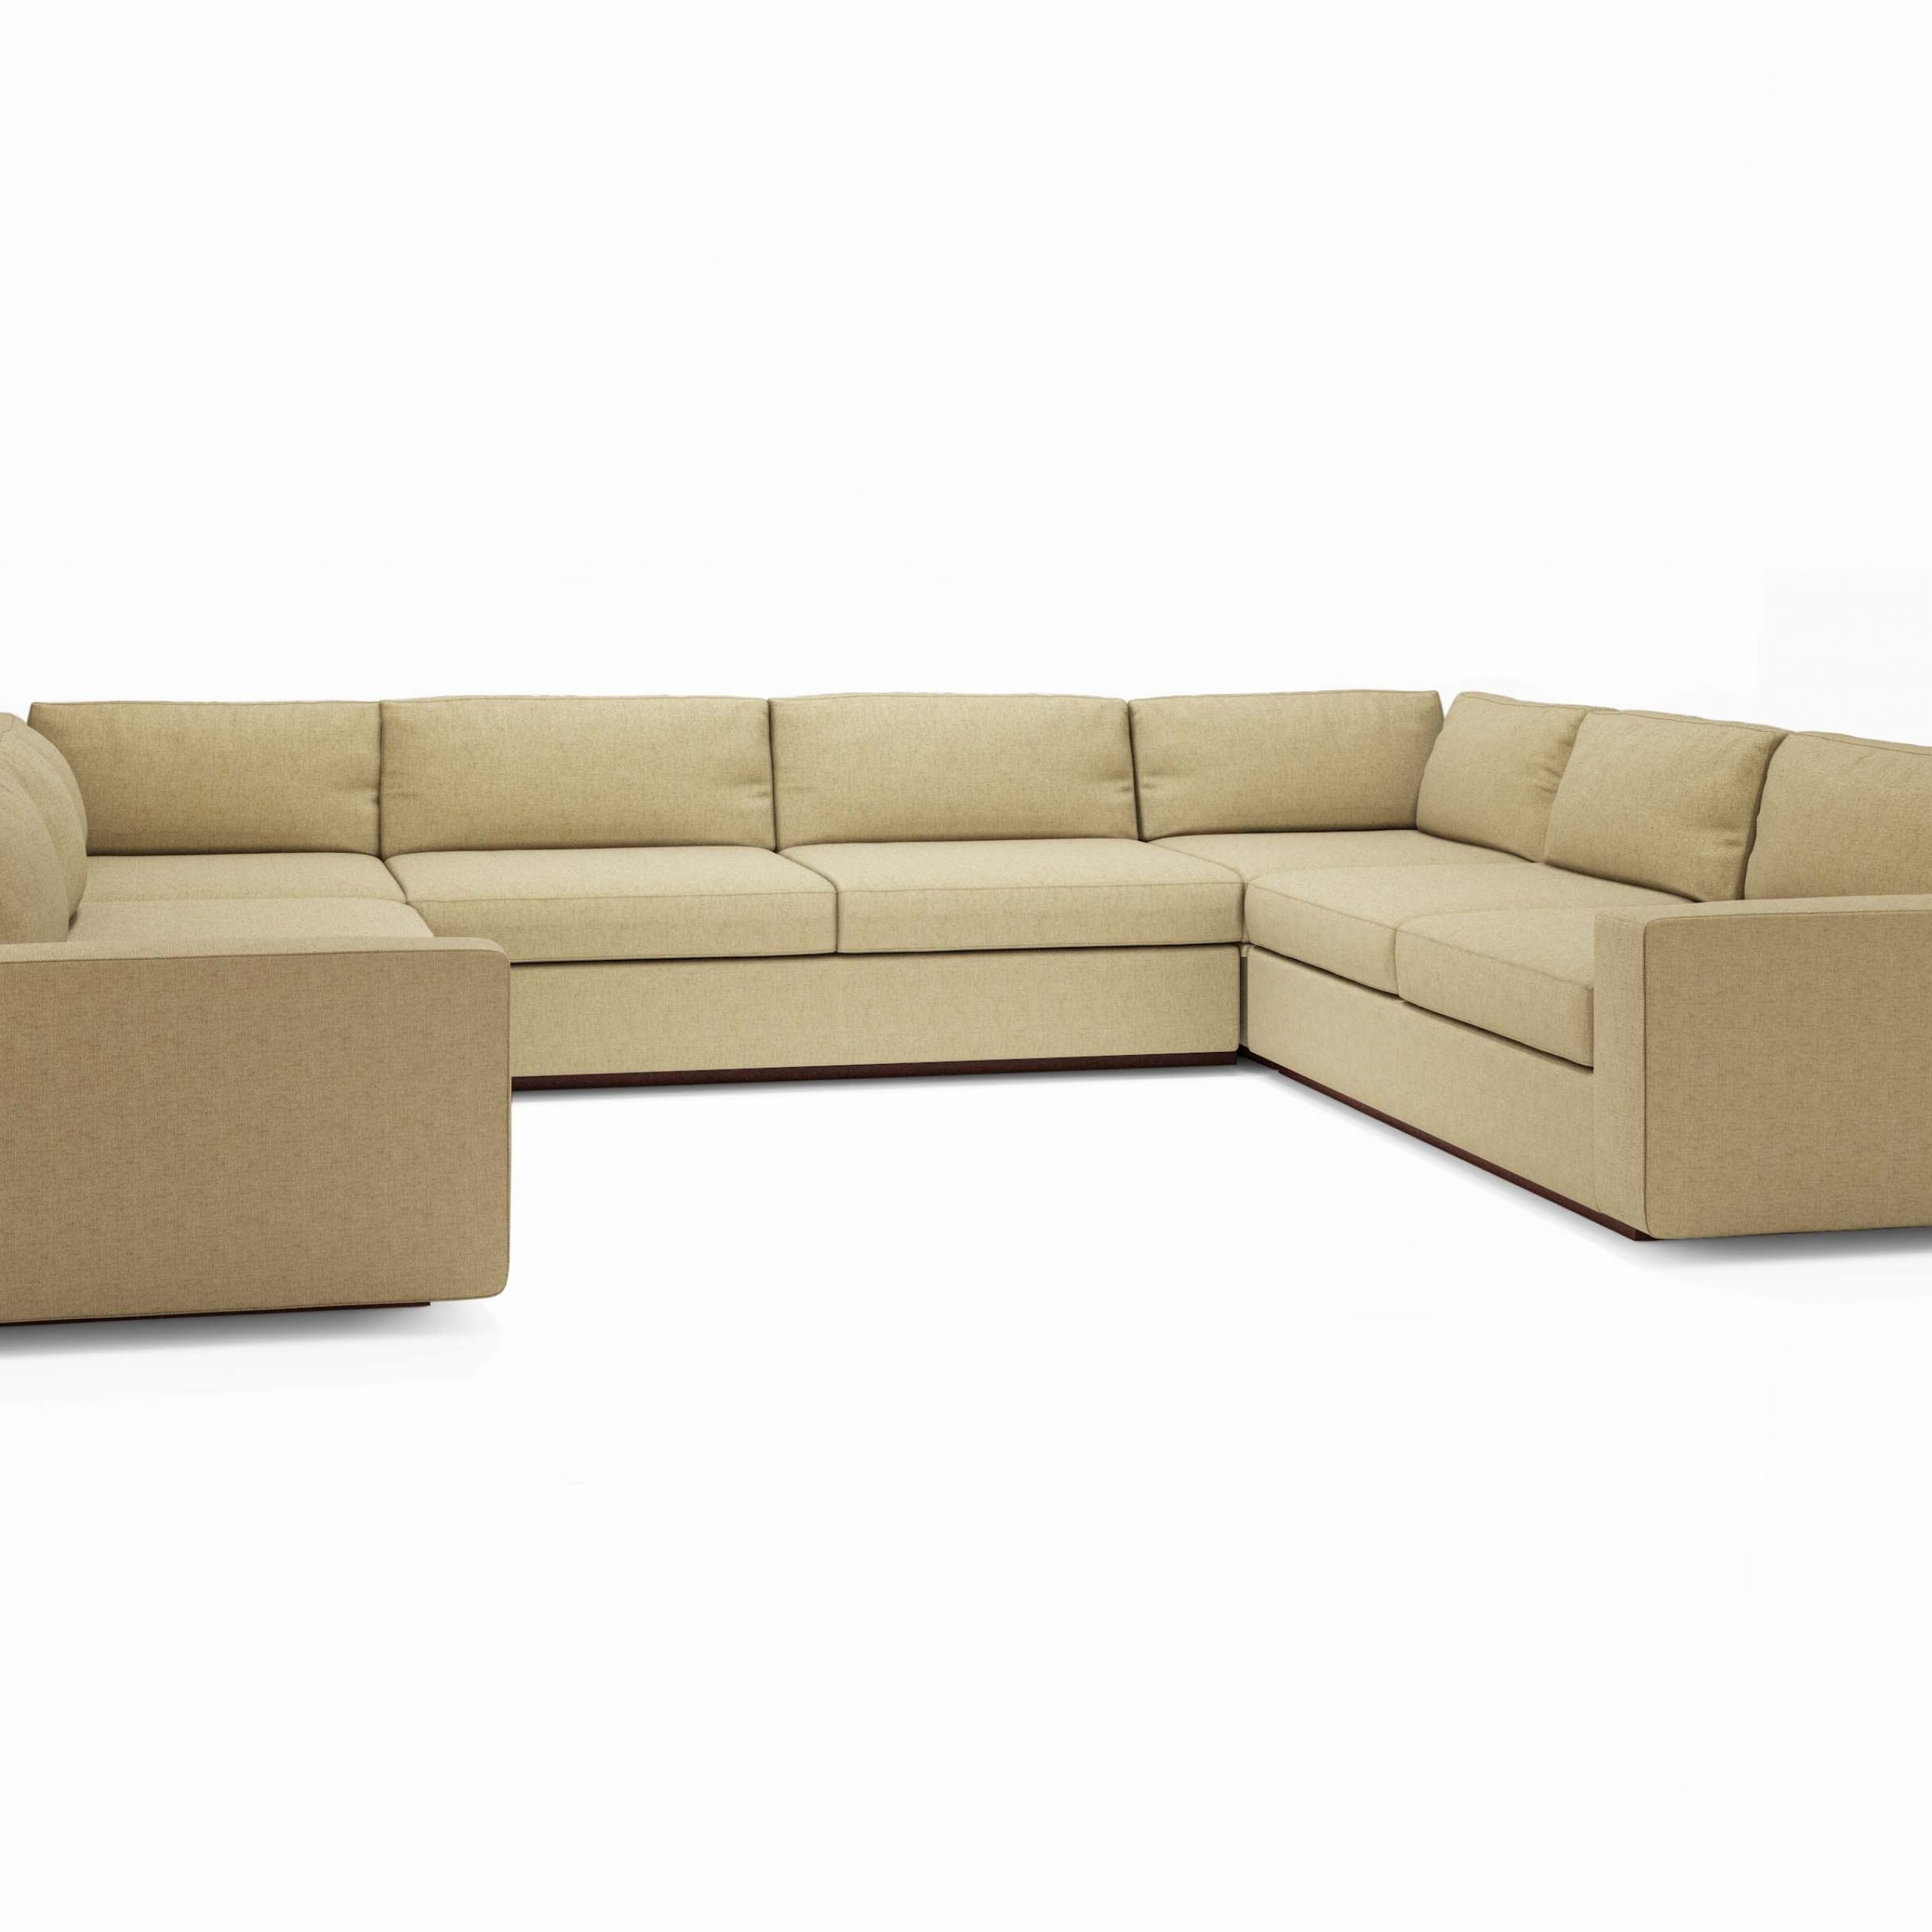 2017 U Shaped Sectional With Chaise Design – Homesfeed Inside Owego L Shaped Sectional Sofas (View 23 of 25)